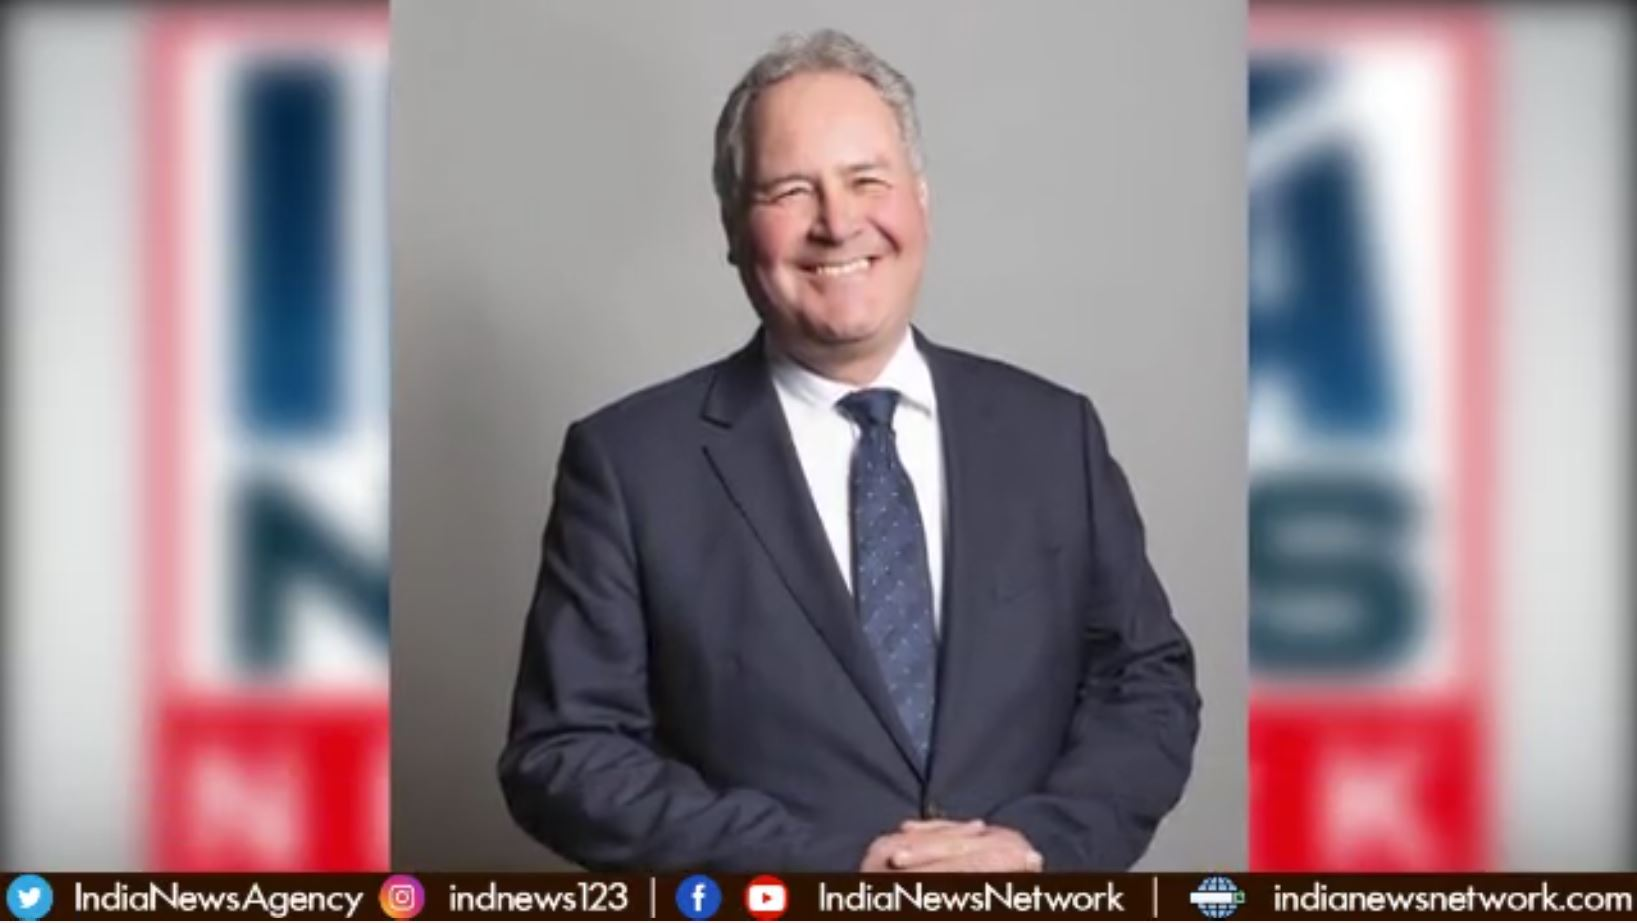 'India should be the 8th member of G7 countries': UK MP Bob Blackman